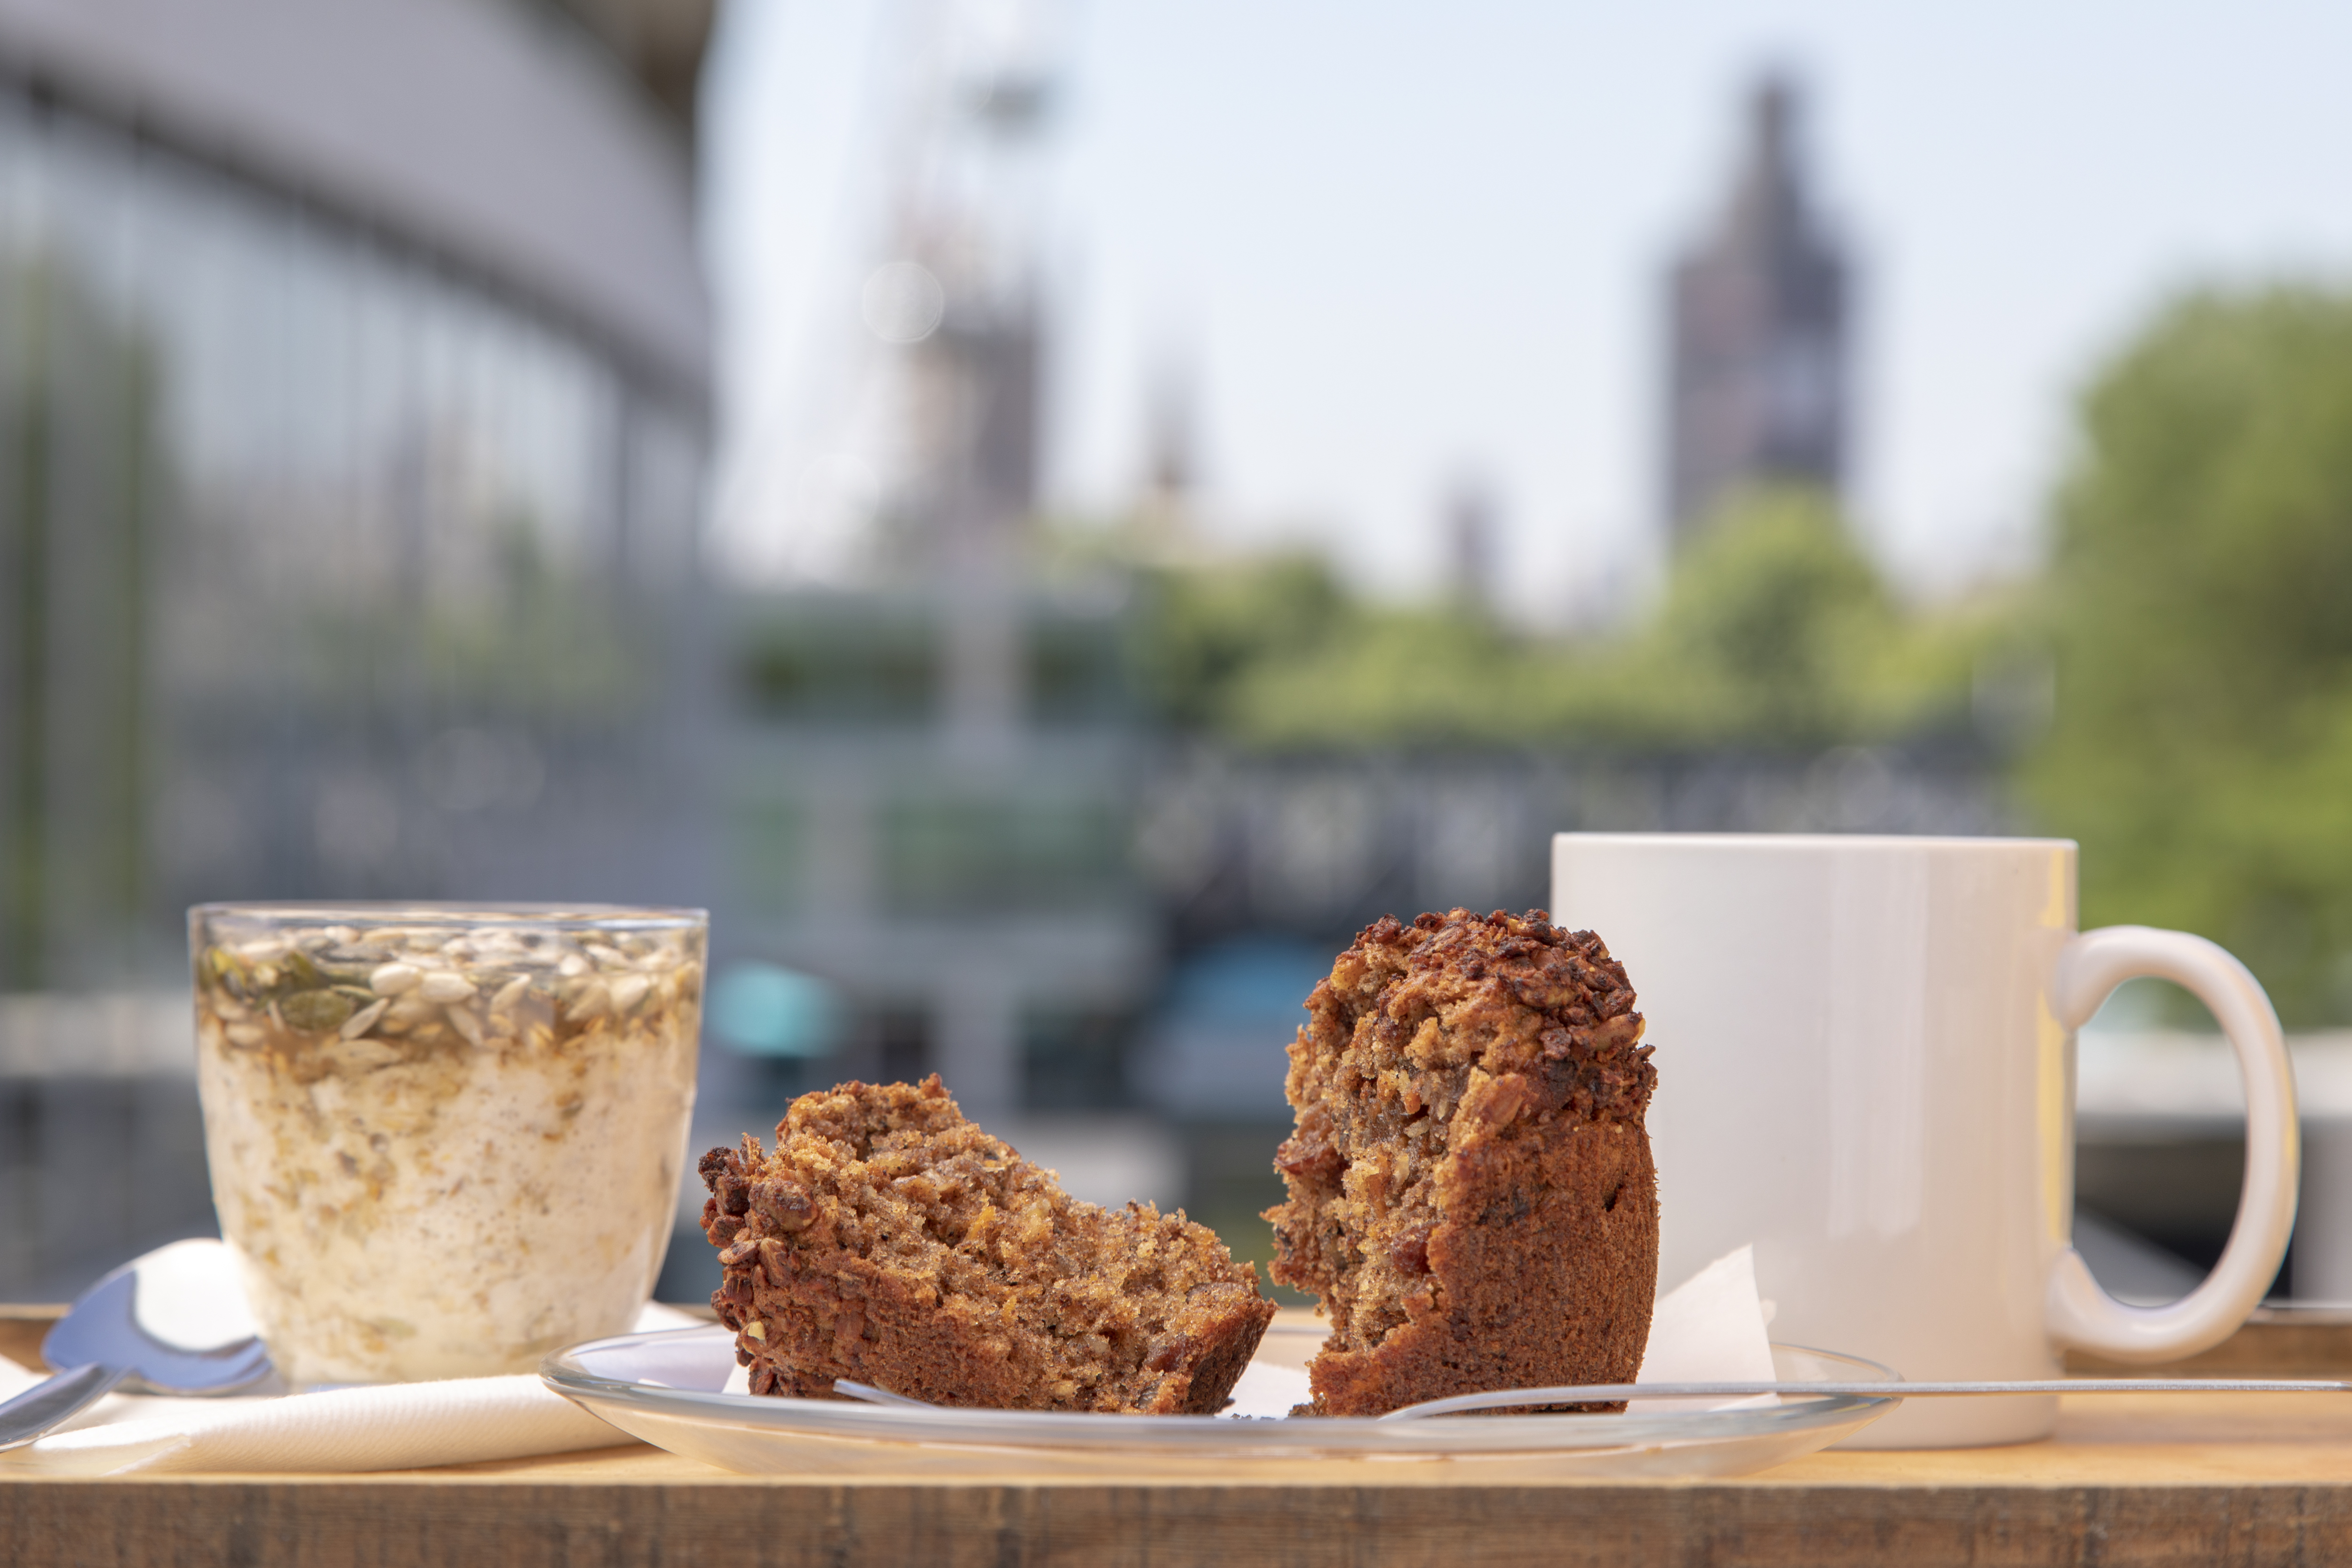 Concrete cafe, muffin, granola and cup of tea